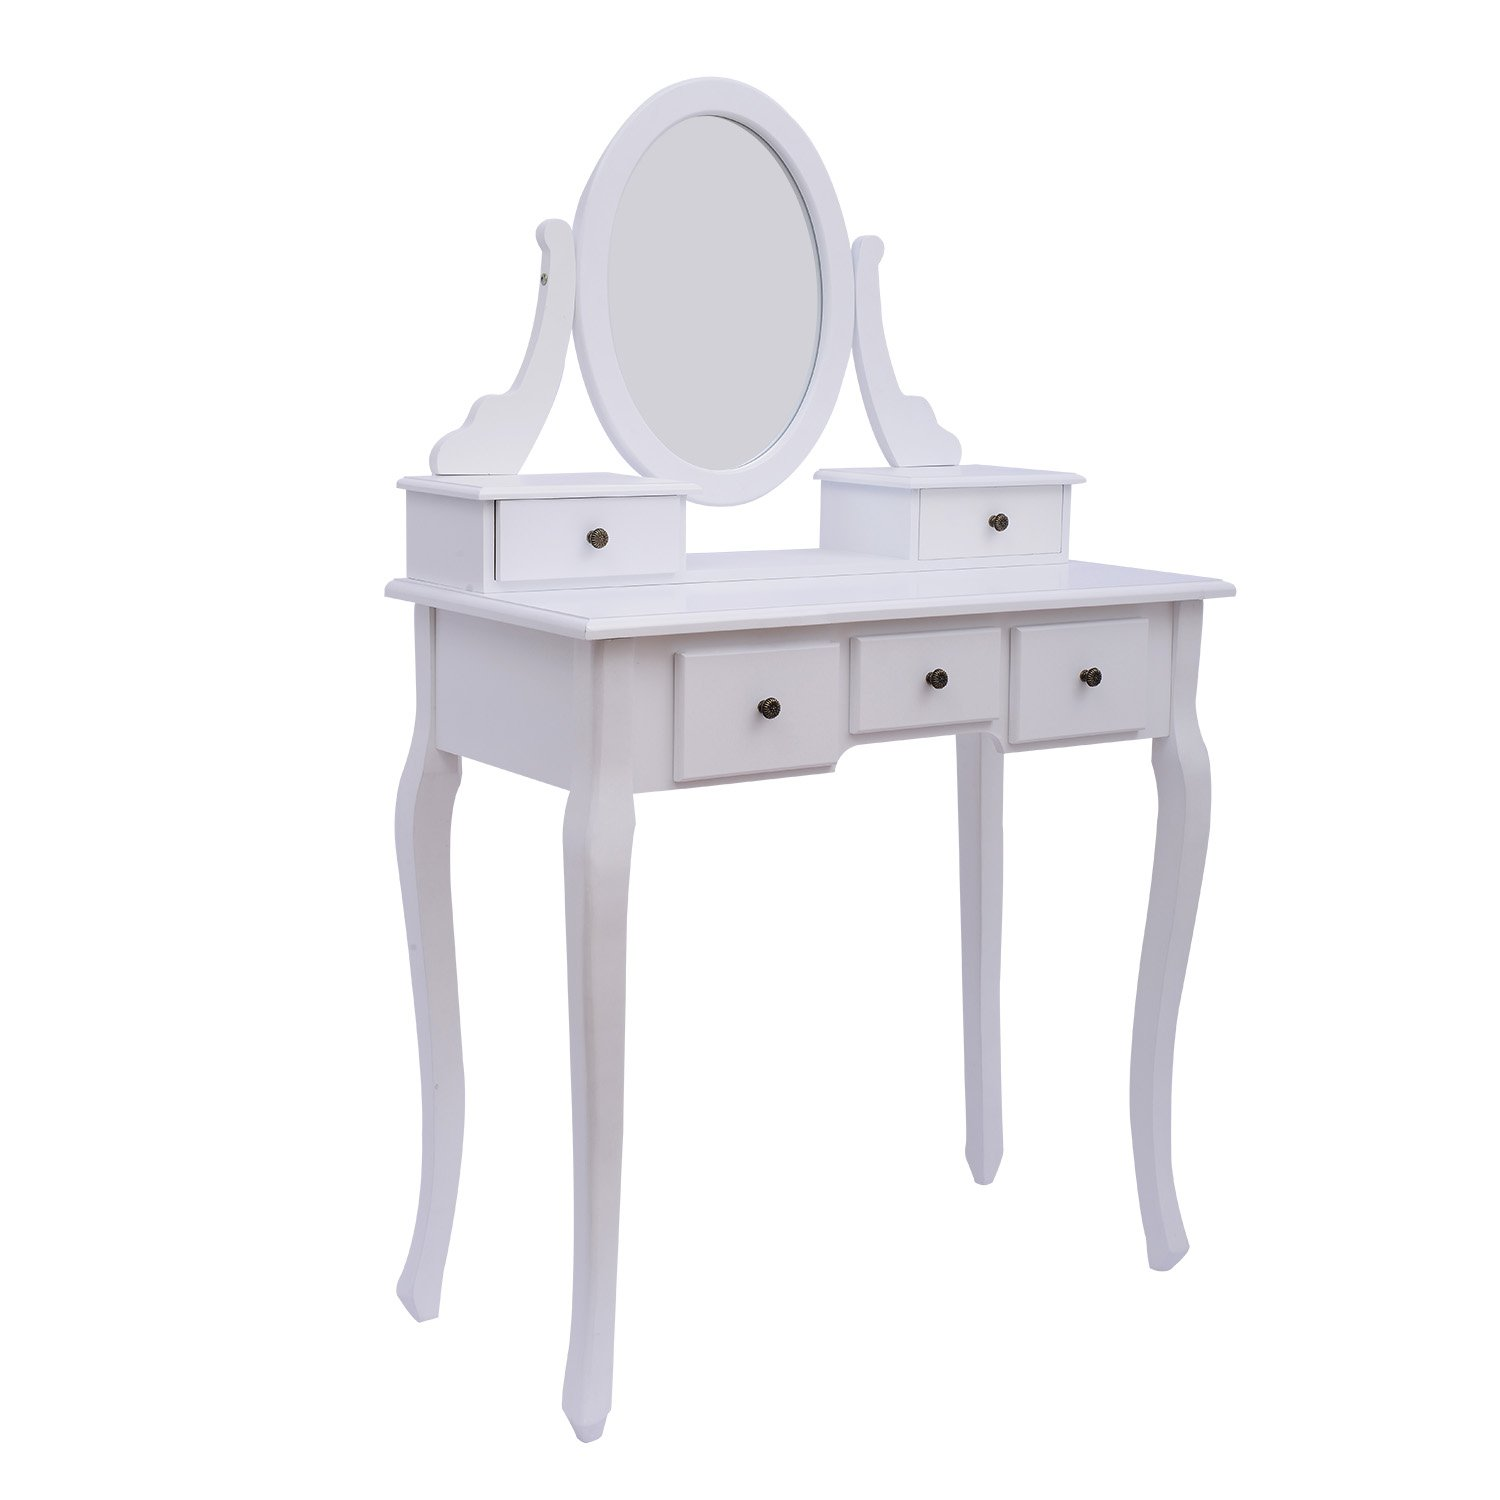 Homcom dressing table stool makeup mirror wood dresser antique homcom dressing table stool makeup mirror wood dresser antique style shabby chic with vanity mirror stool white amazon home kitchen geotapseo Images